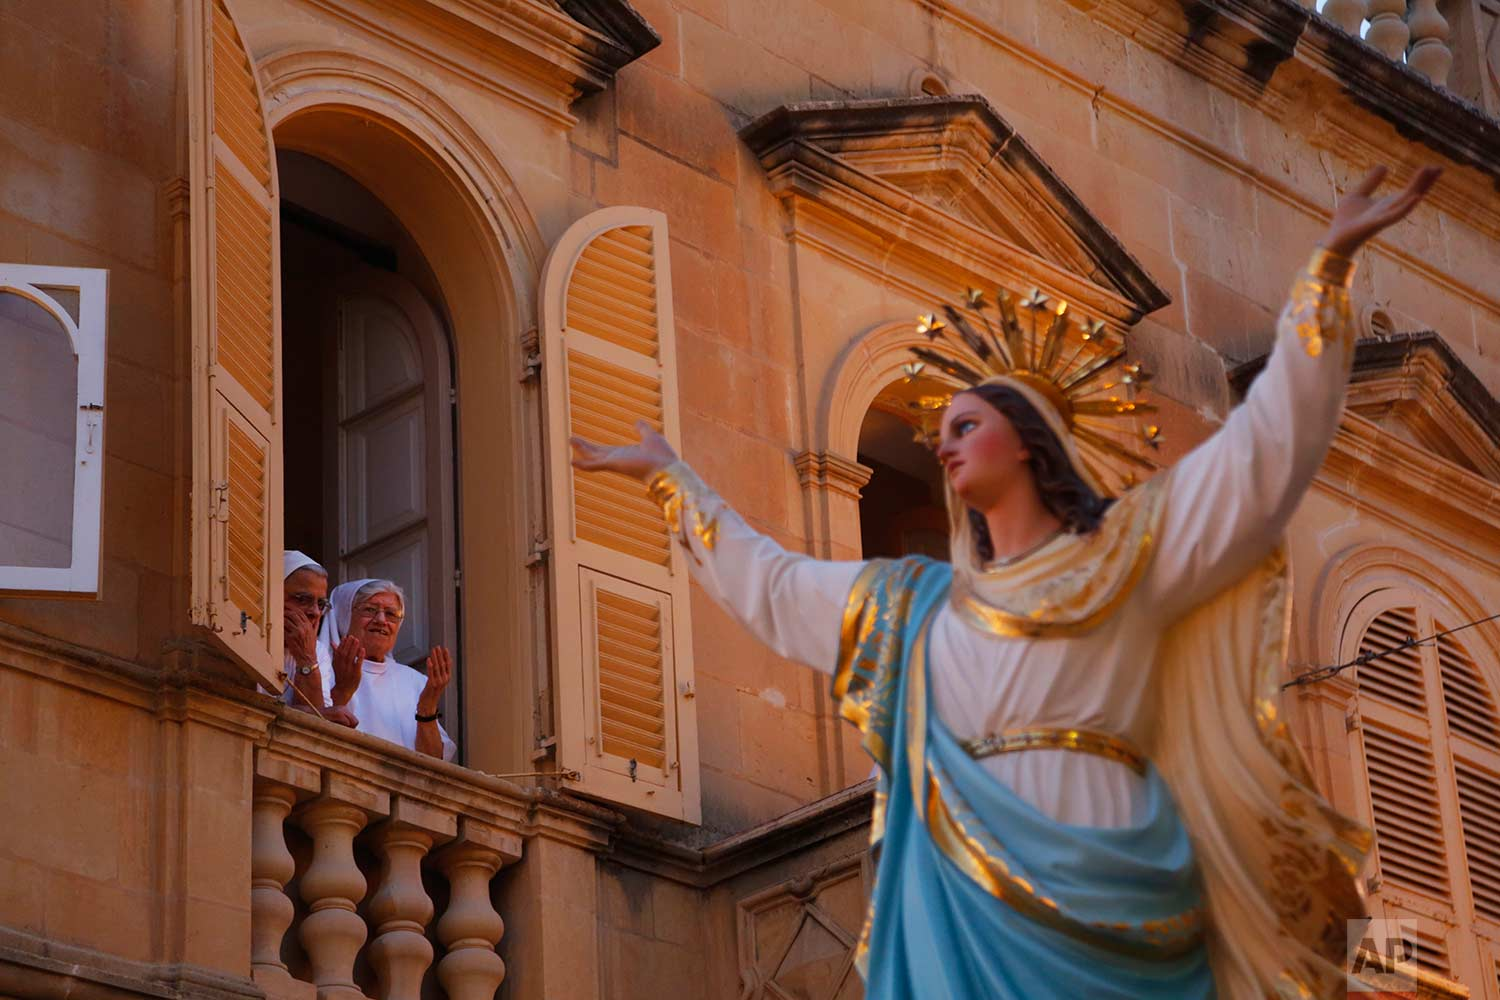 In this photo taken on Wednesday, Aug. 15, 2018, nuns offer a prayer as the statue of the Virgin Mary being carried through the streets of Rabat on the island of Gozo in the Maltese archipelago, during the feast day of the Assumption of Mary. (AP Photo/Niranjan Shrestha)